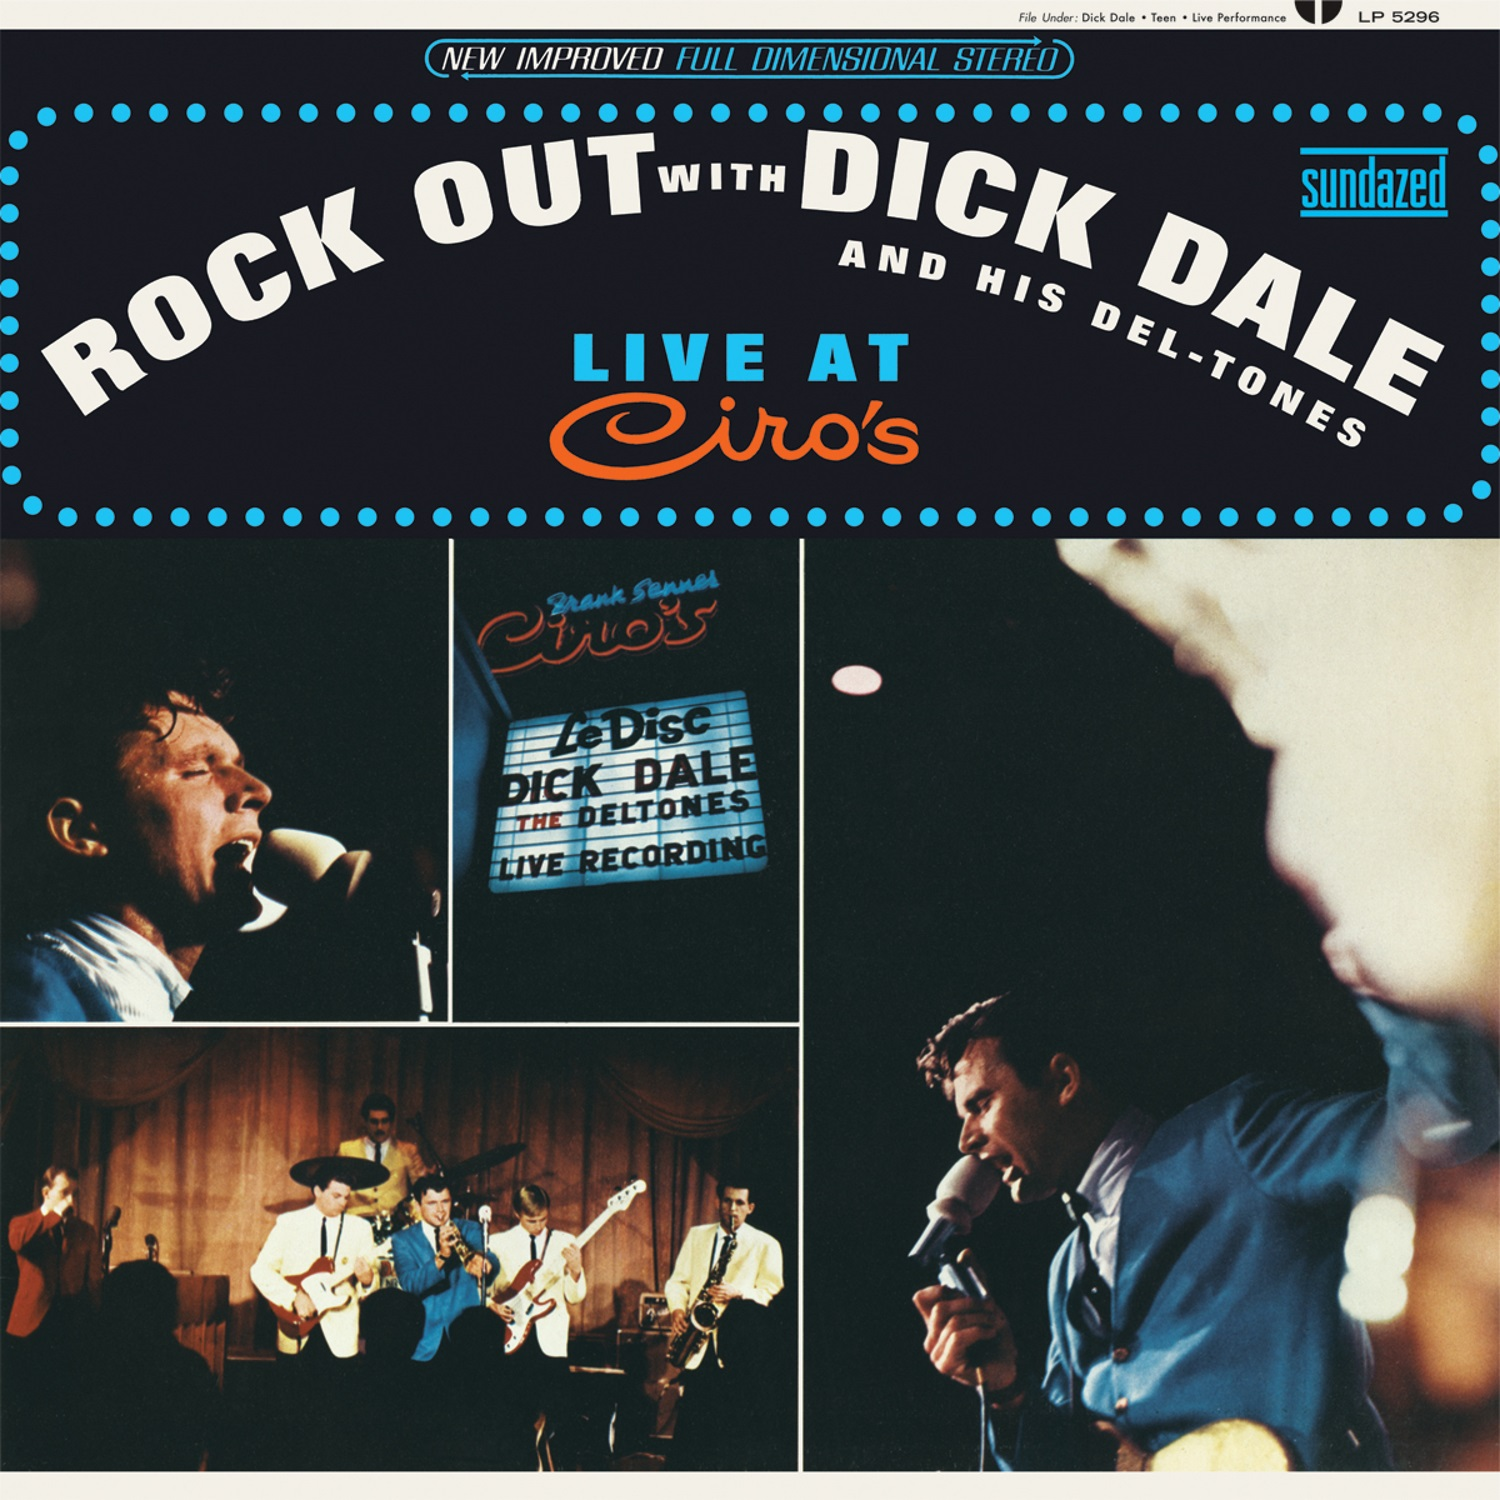 Dick Dale and His Del-Tones - Rock Out with Dick Dale and His Del-Tones (Live at Ciros) LP